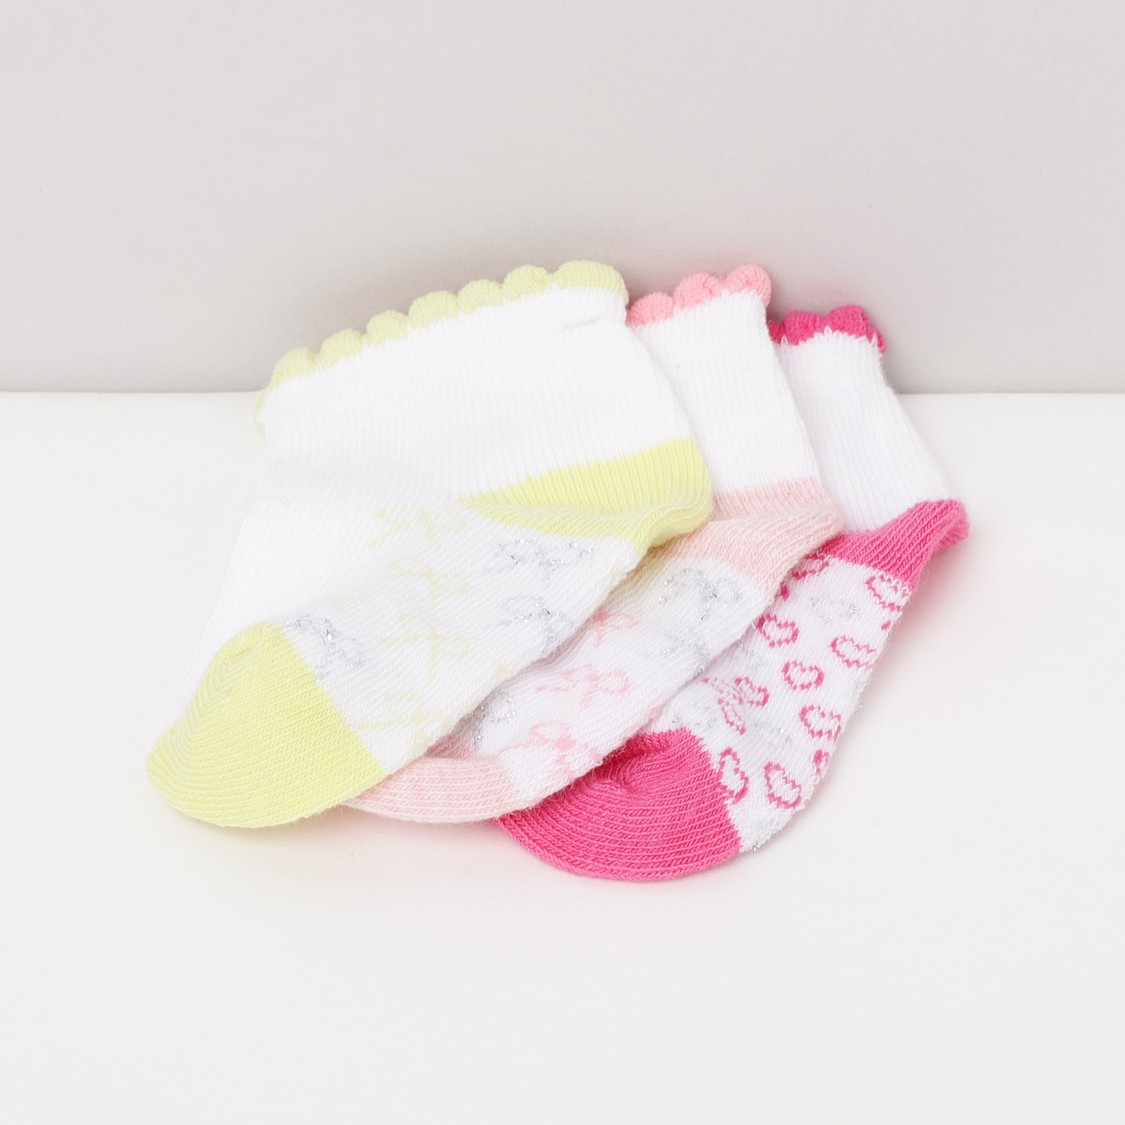 MAX Textured Socks- Pack of 4